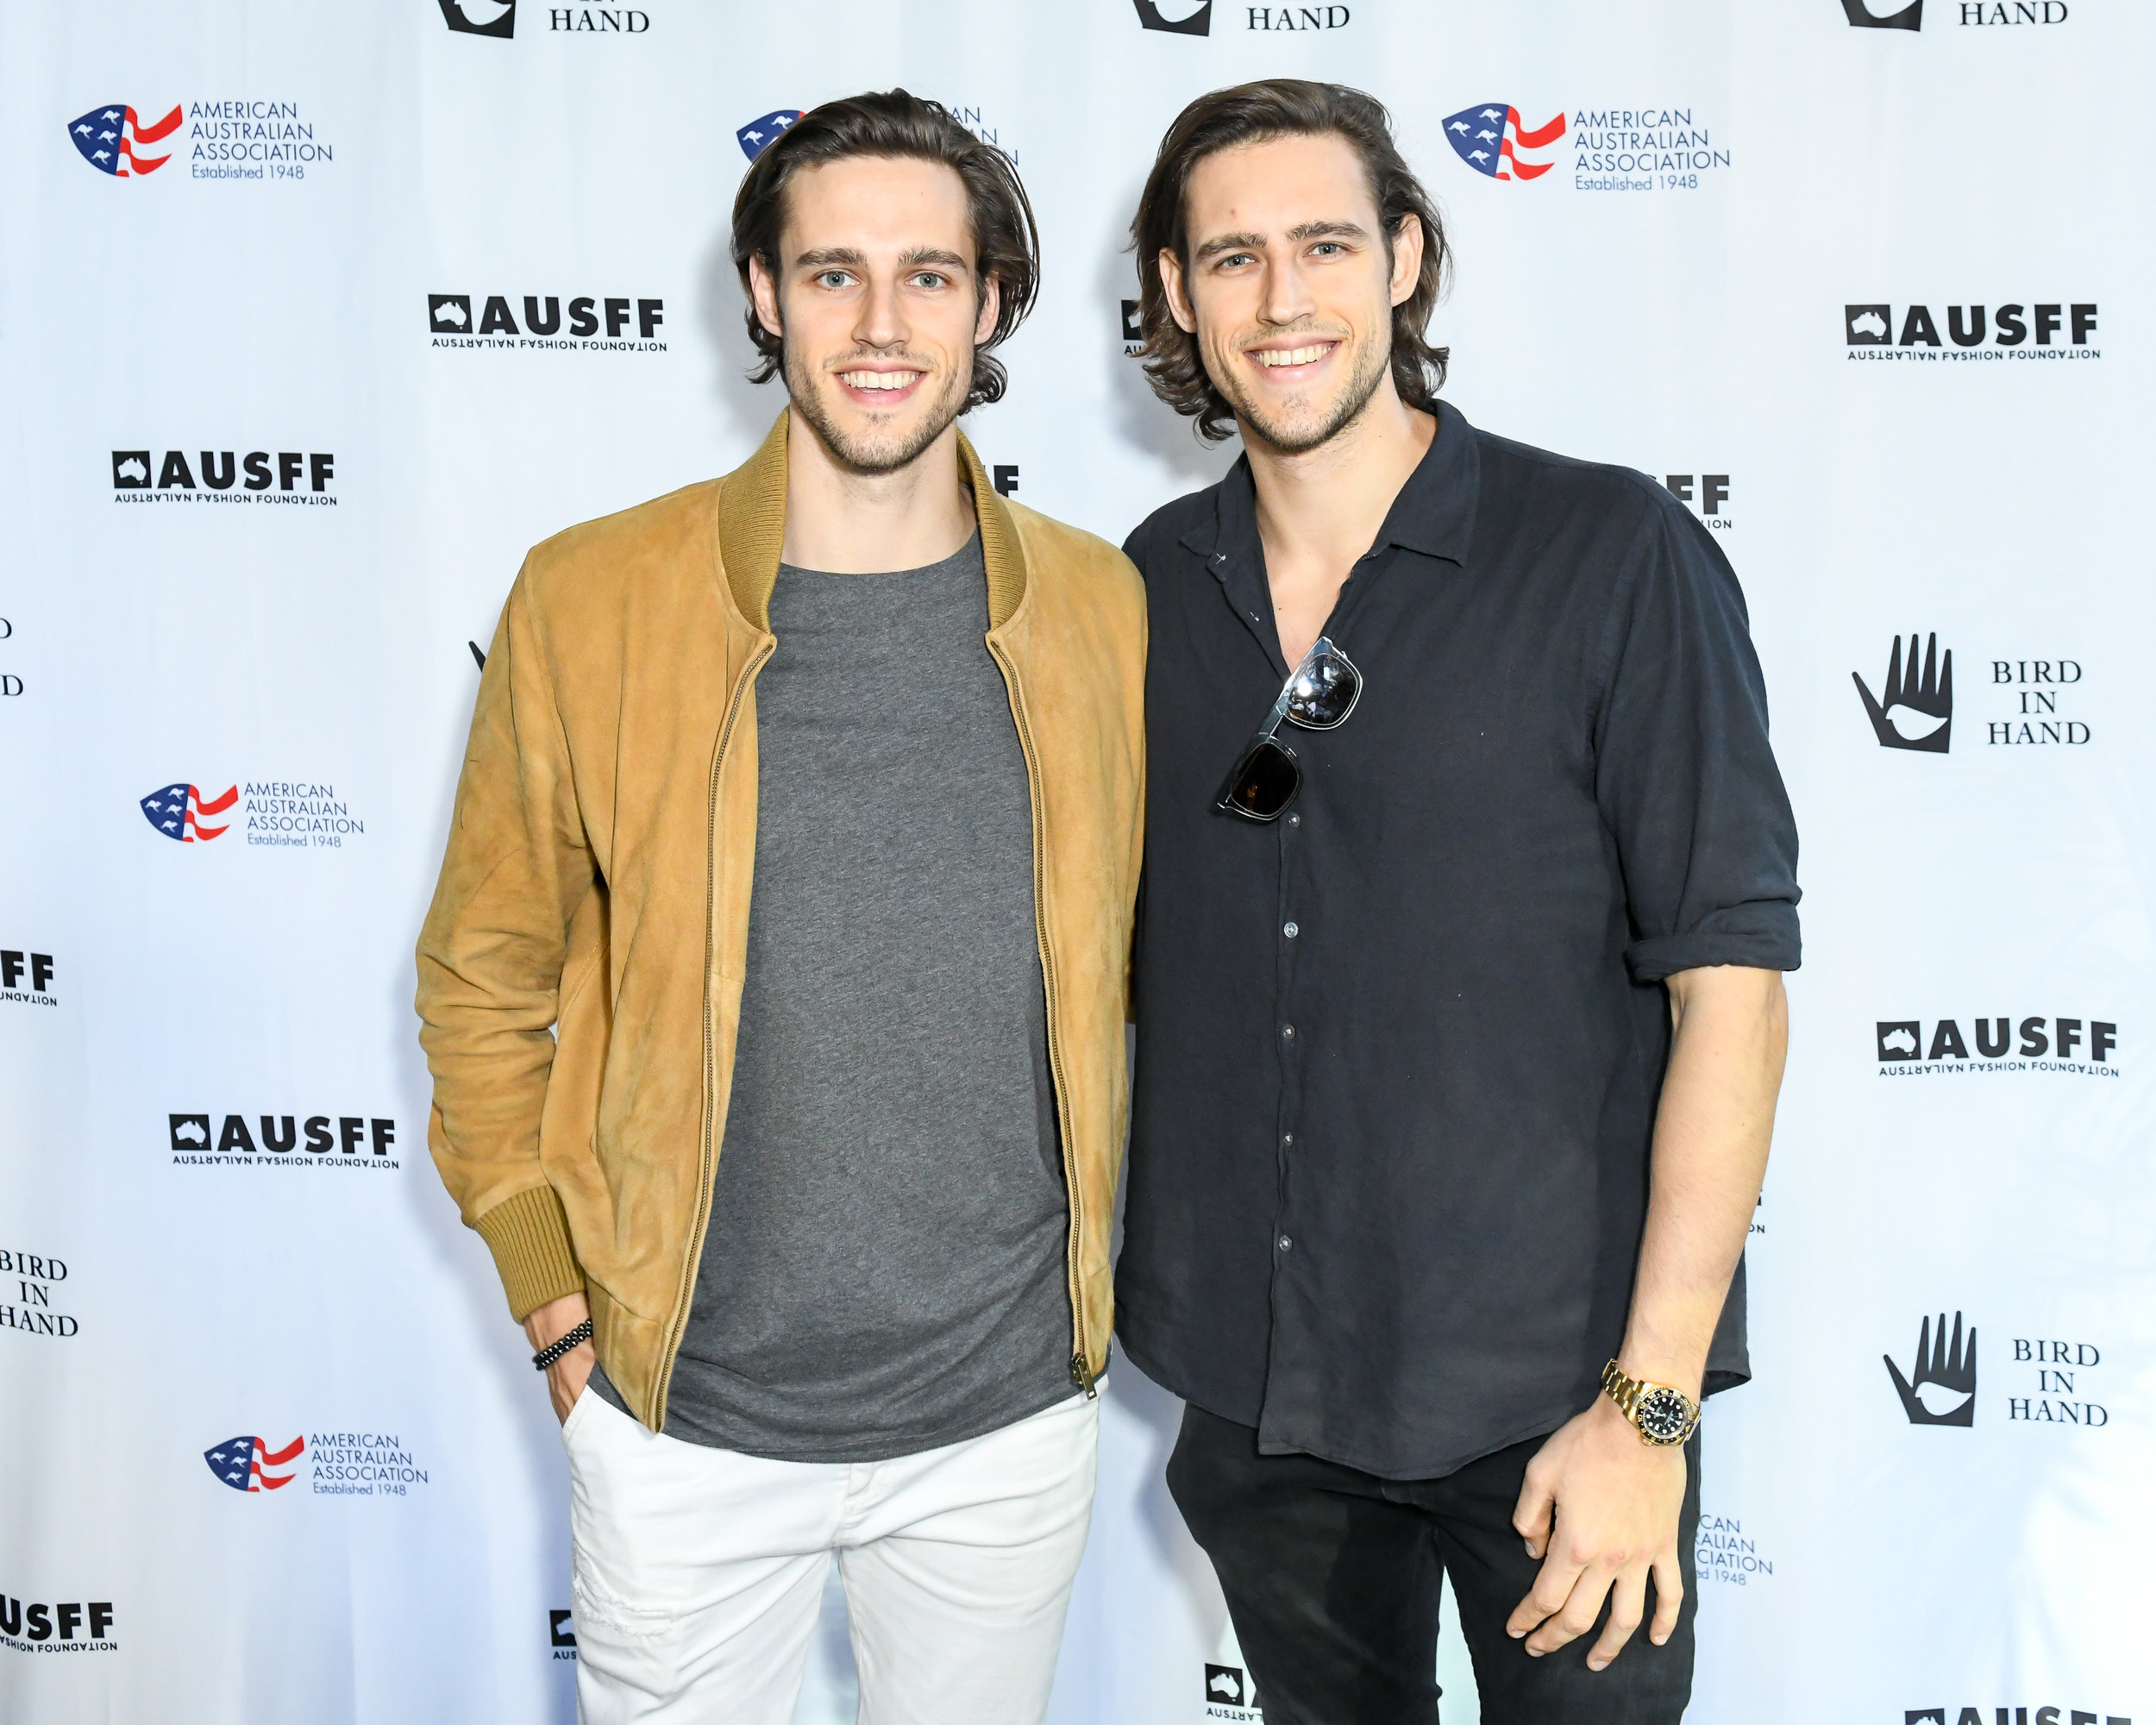 Jordan Stenmark, Zac Stenmark at the Australian Fashion Foundation Summer Party. Image by Joe Schildhorn/BFA